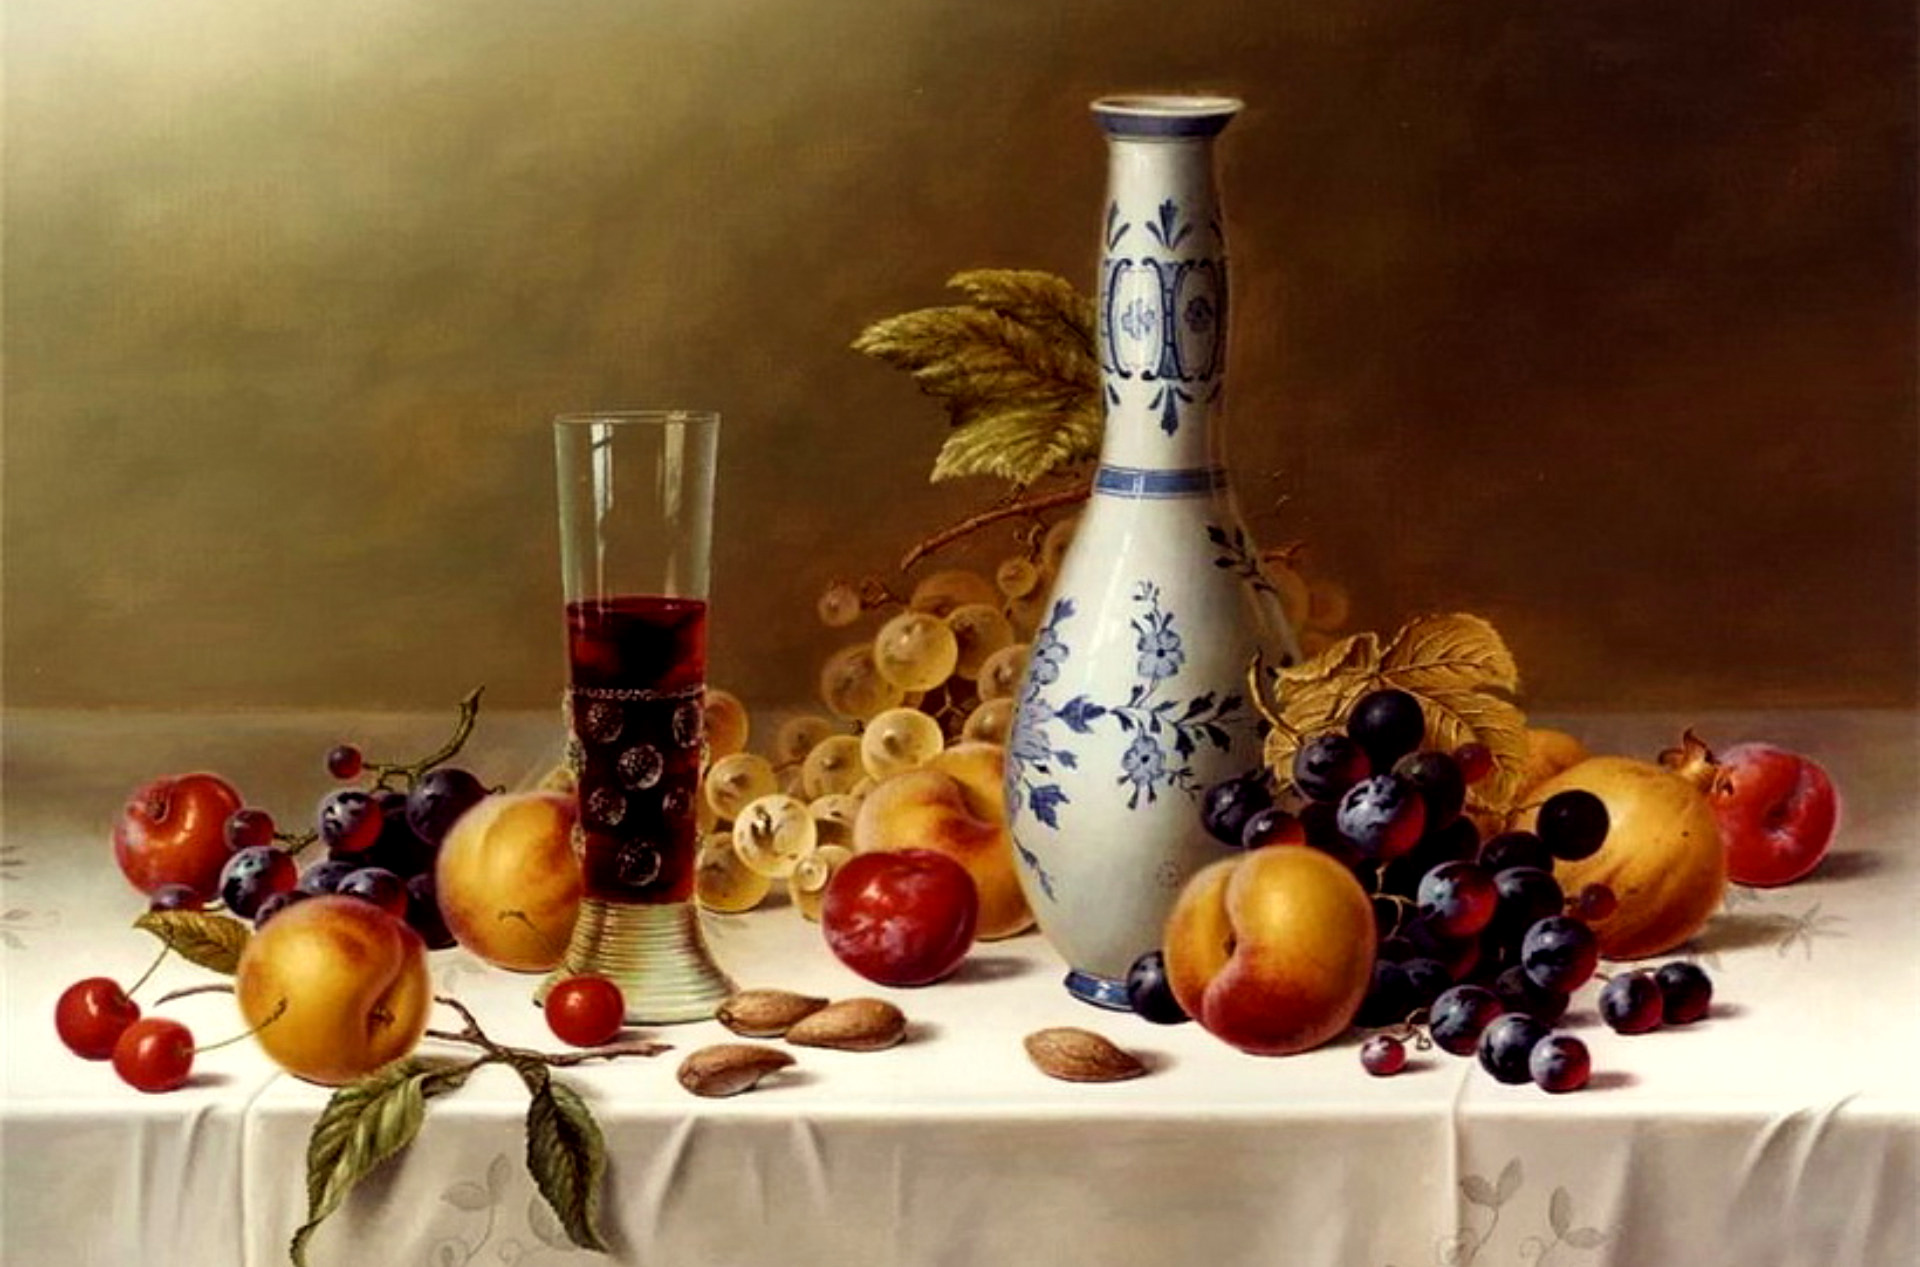 Wine, chalice, decanter, fruit, still life, table, tablecloth, wine Wallpaper